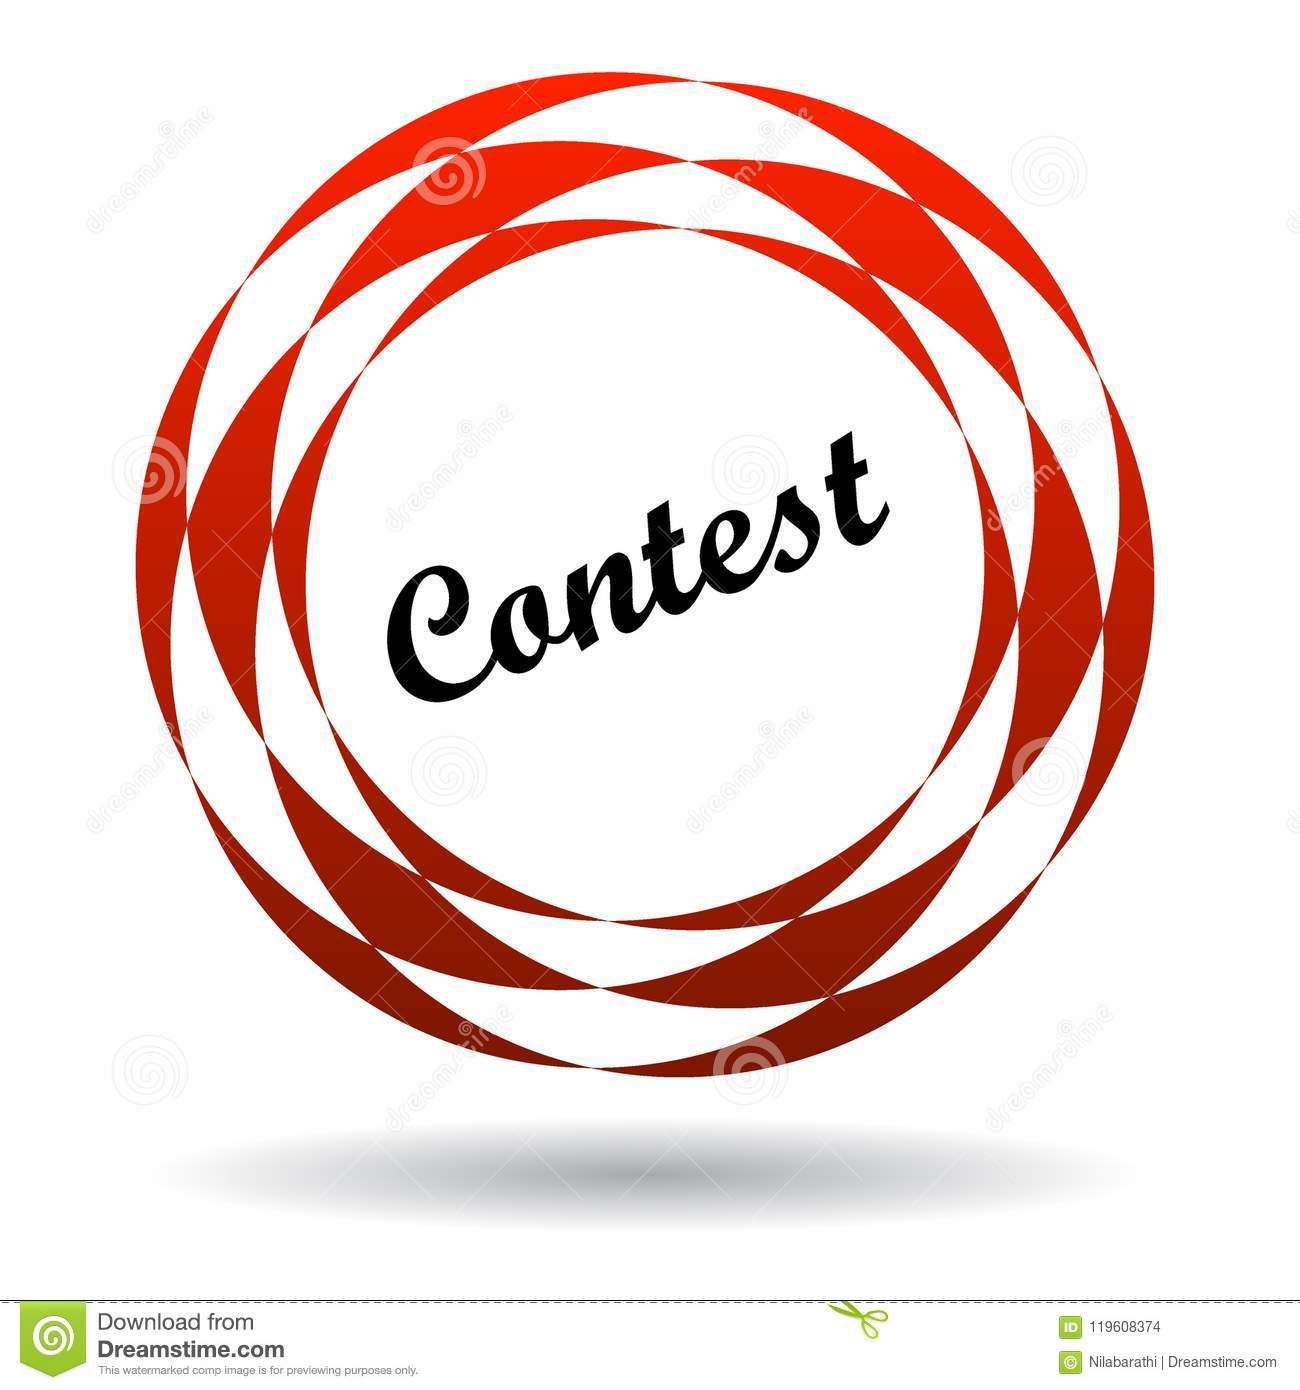 Contest colorful icon stock illustration. Illustration of clipart.